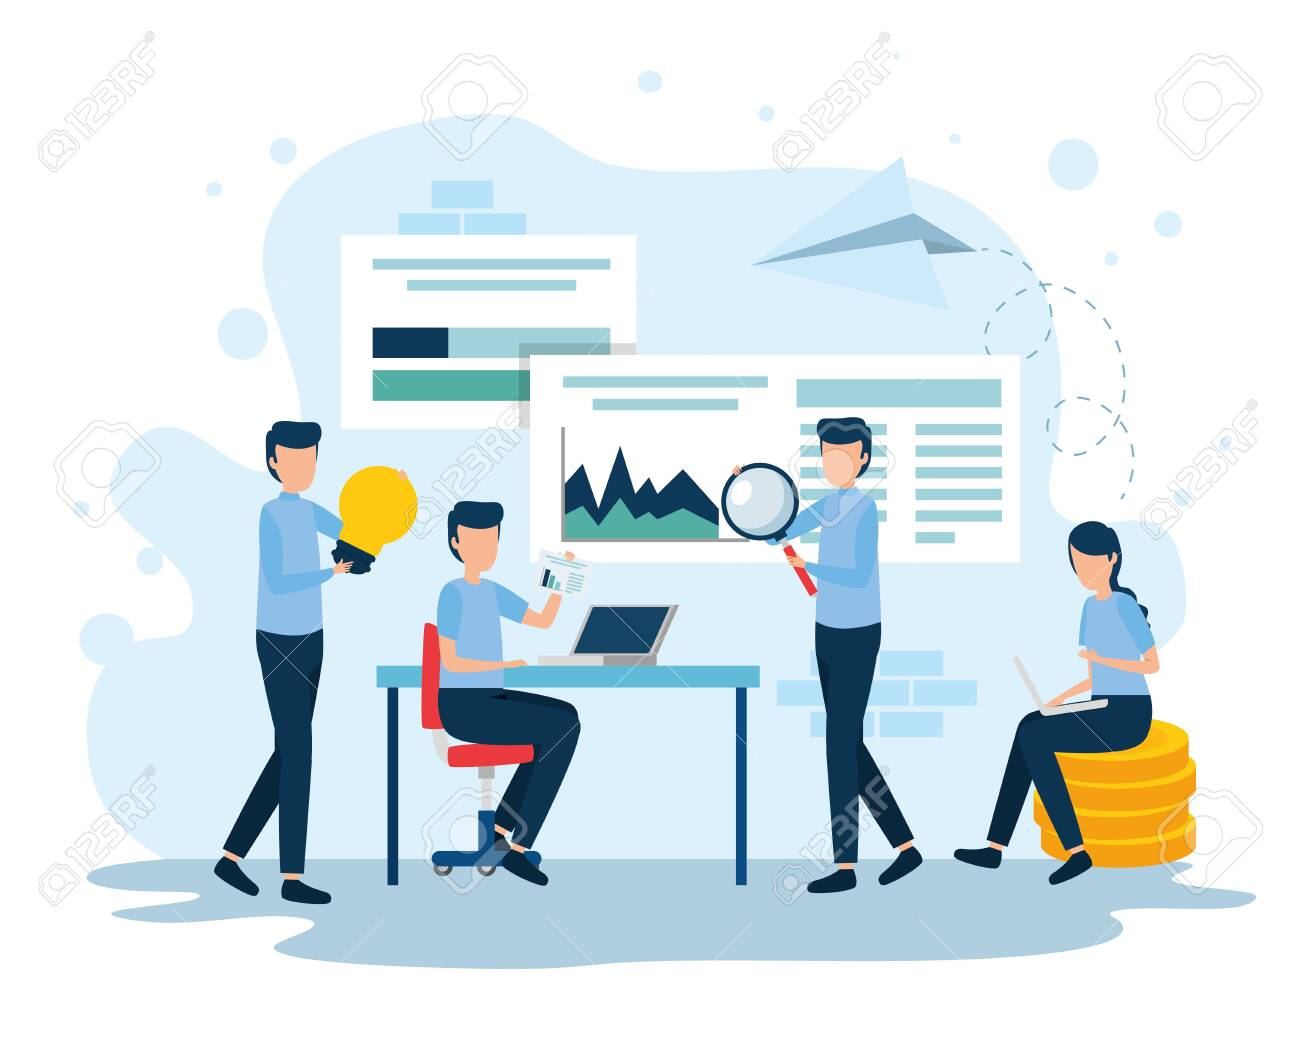 teamwork workers in the workplace vector illustration design - 132640646